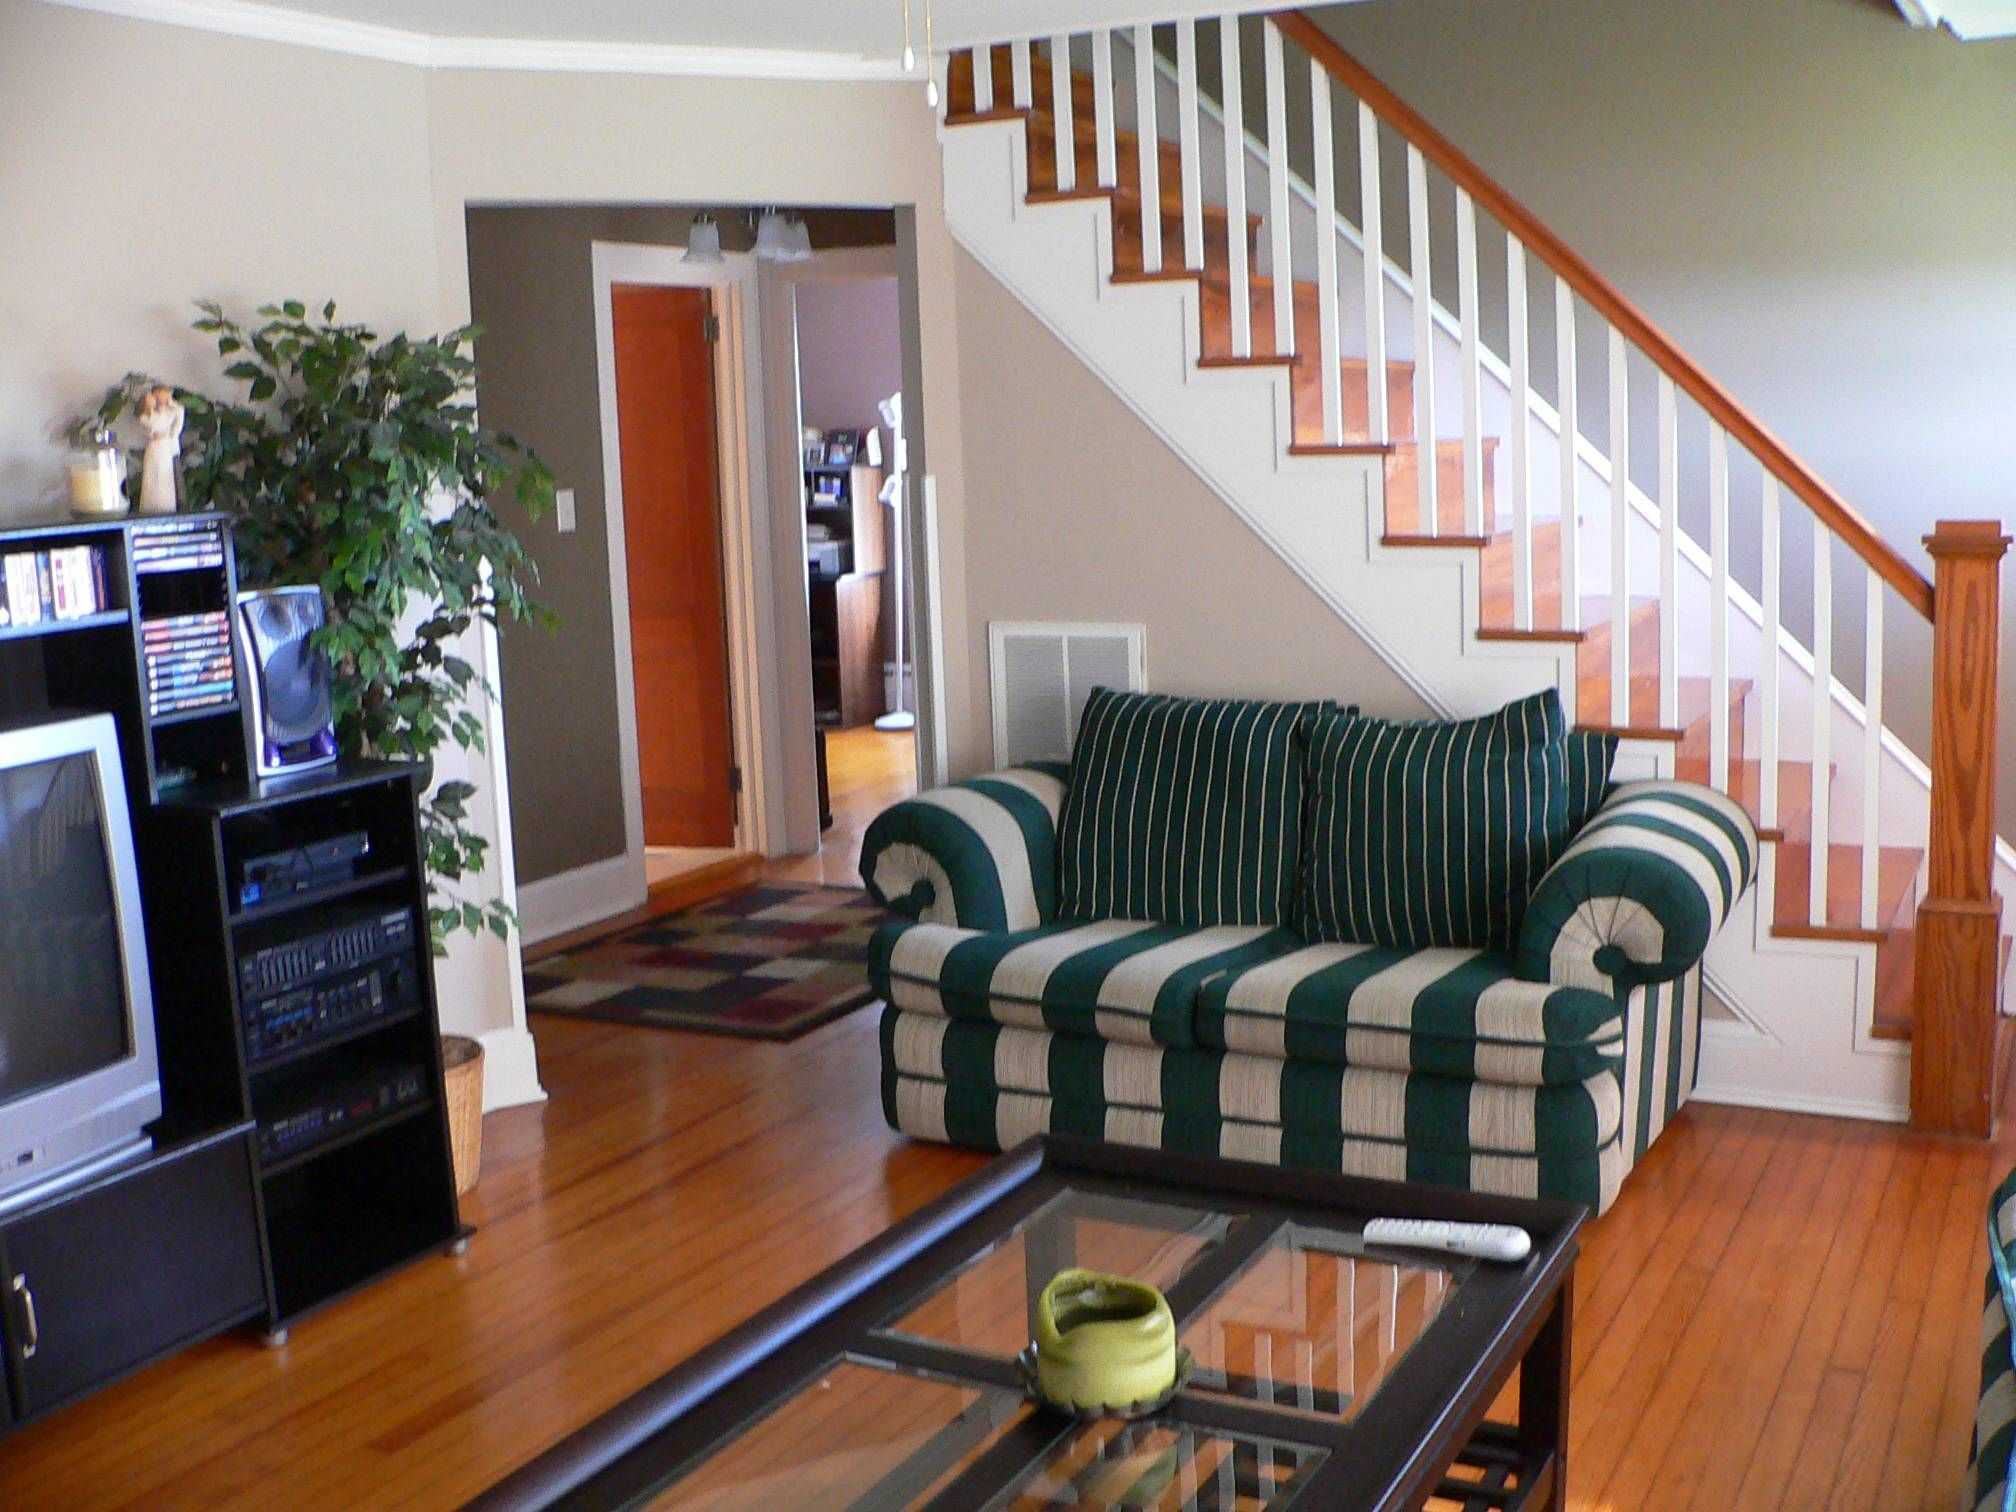 Do It Yourself: Completely Remodel a house for $20k | Home ...